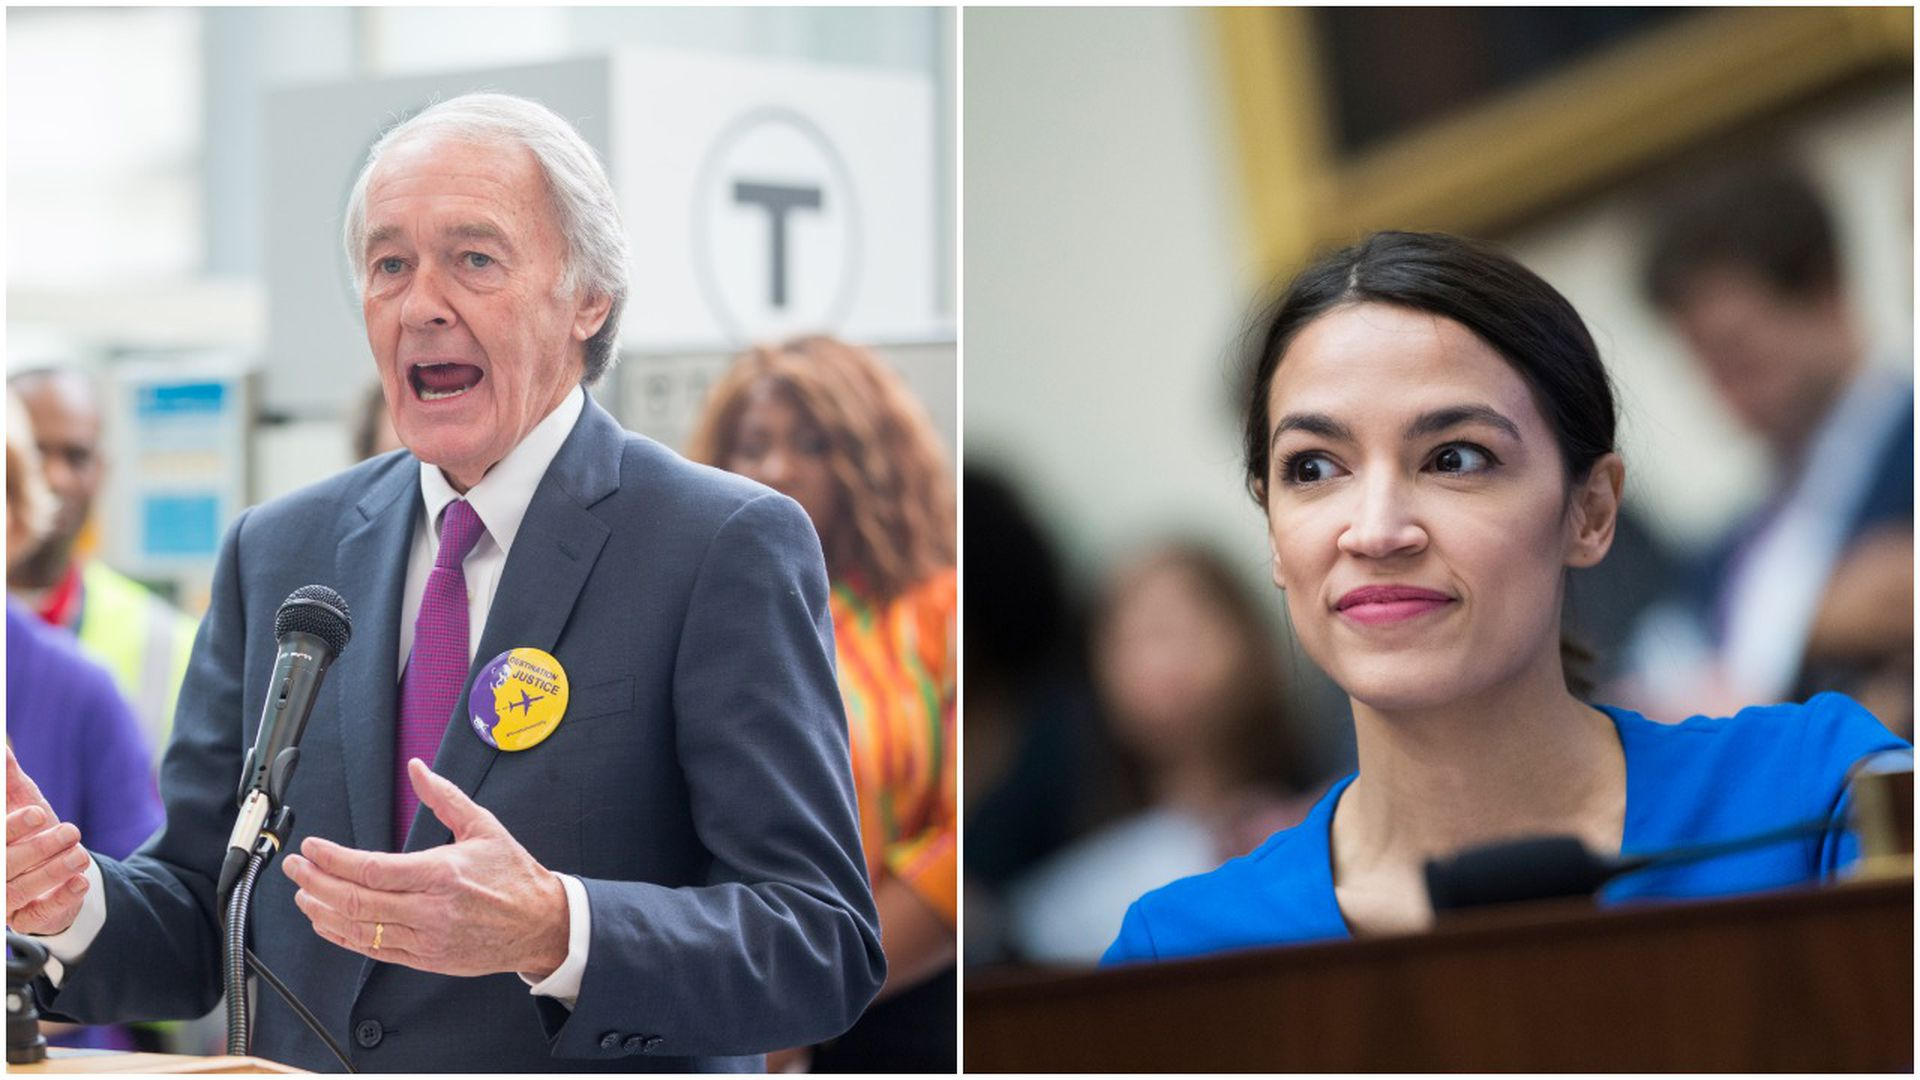 Ed Markey and AOC